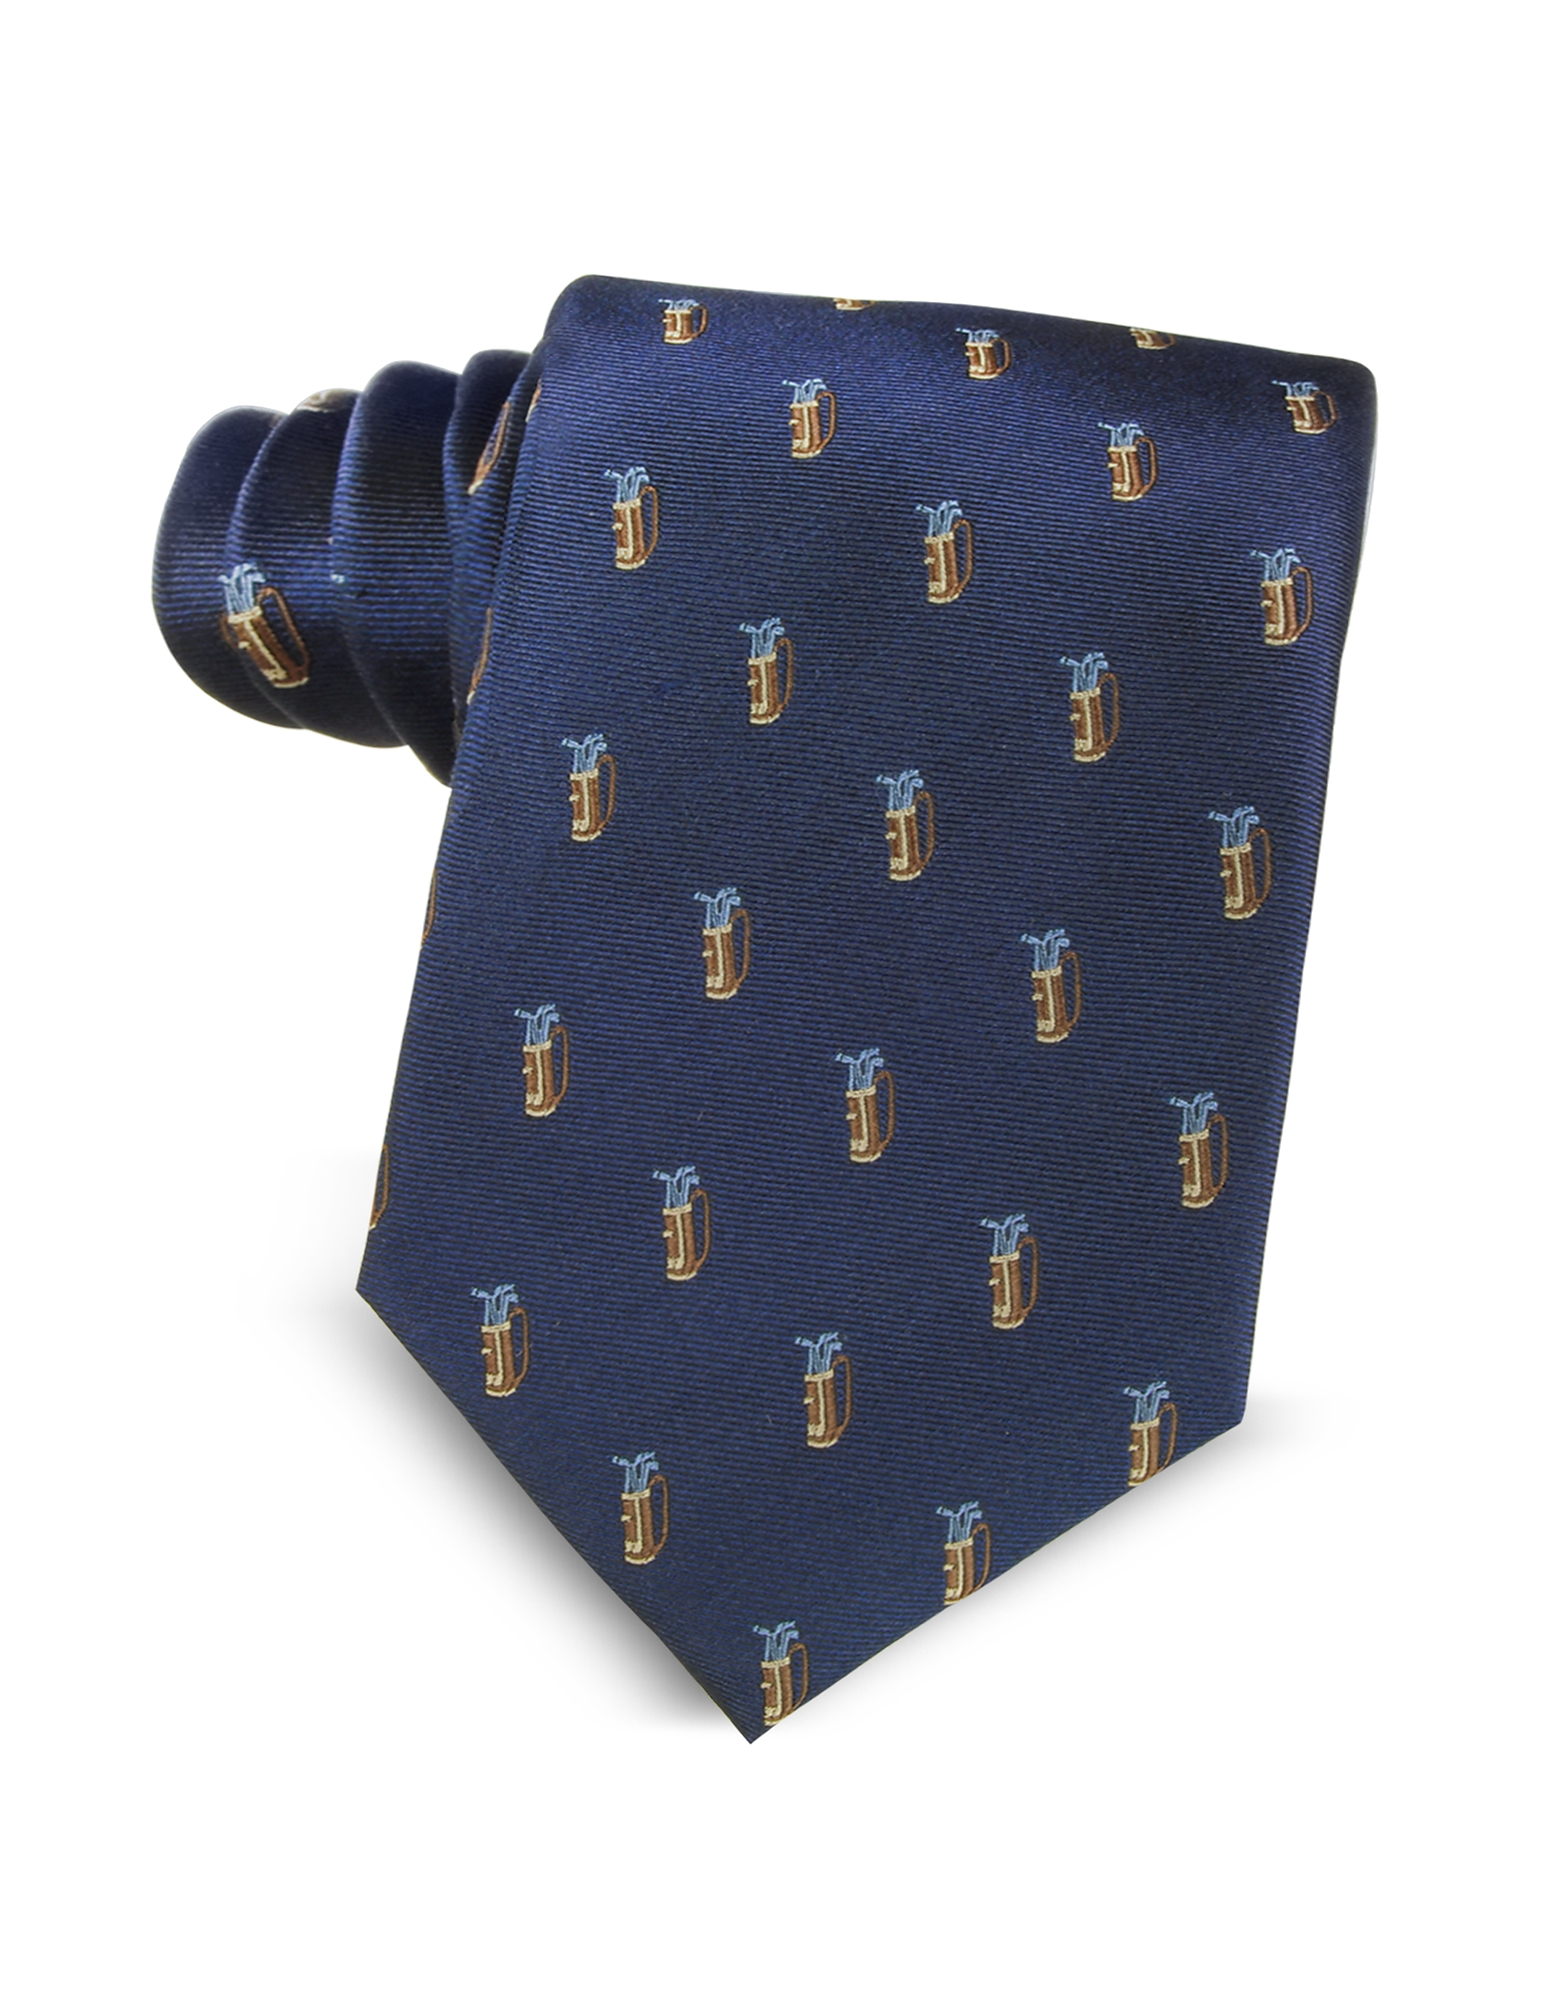 Marina D'Este Ties, Golf Bag Light Blue Woven Silk Men's Tie